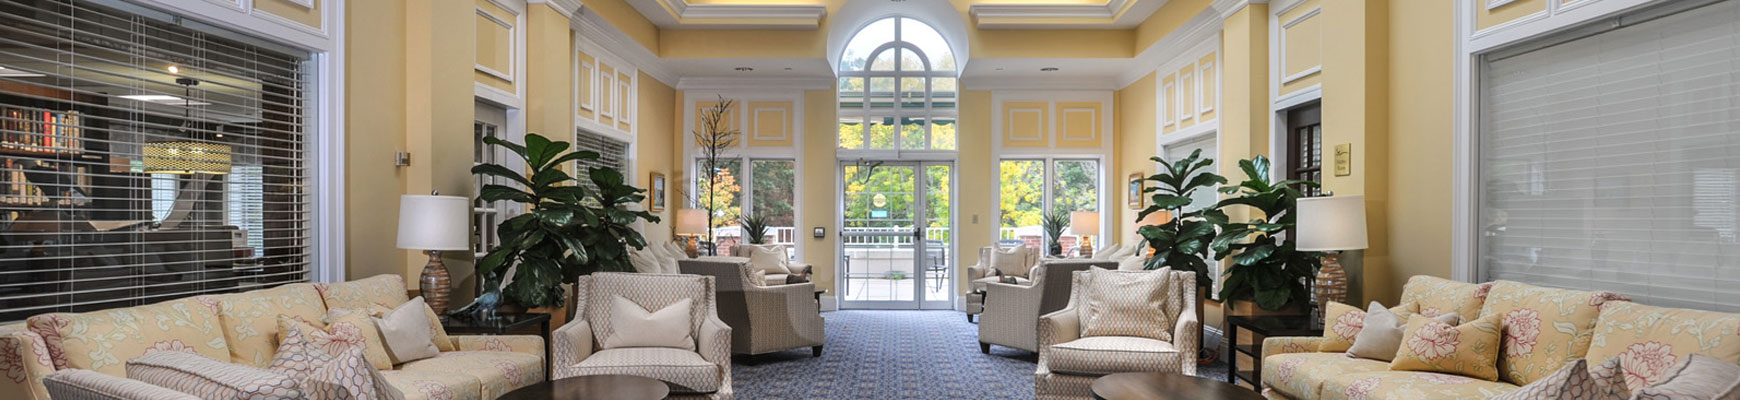 A yellow and floral themed community room at Fox Hill Village senior living community in Massachusetts